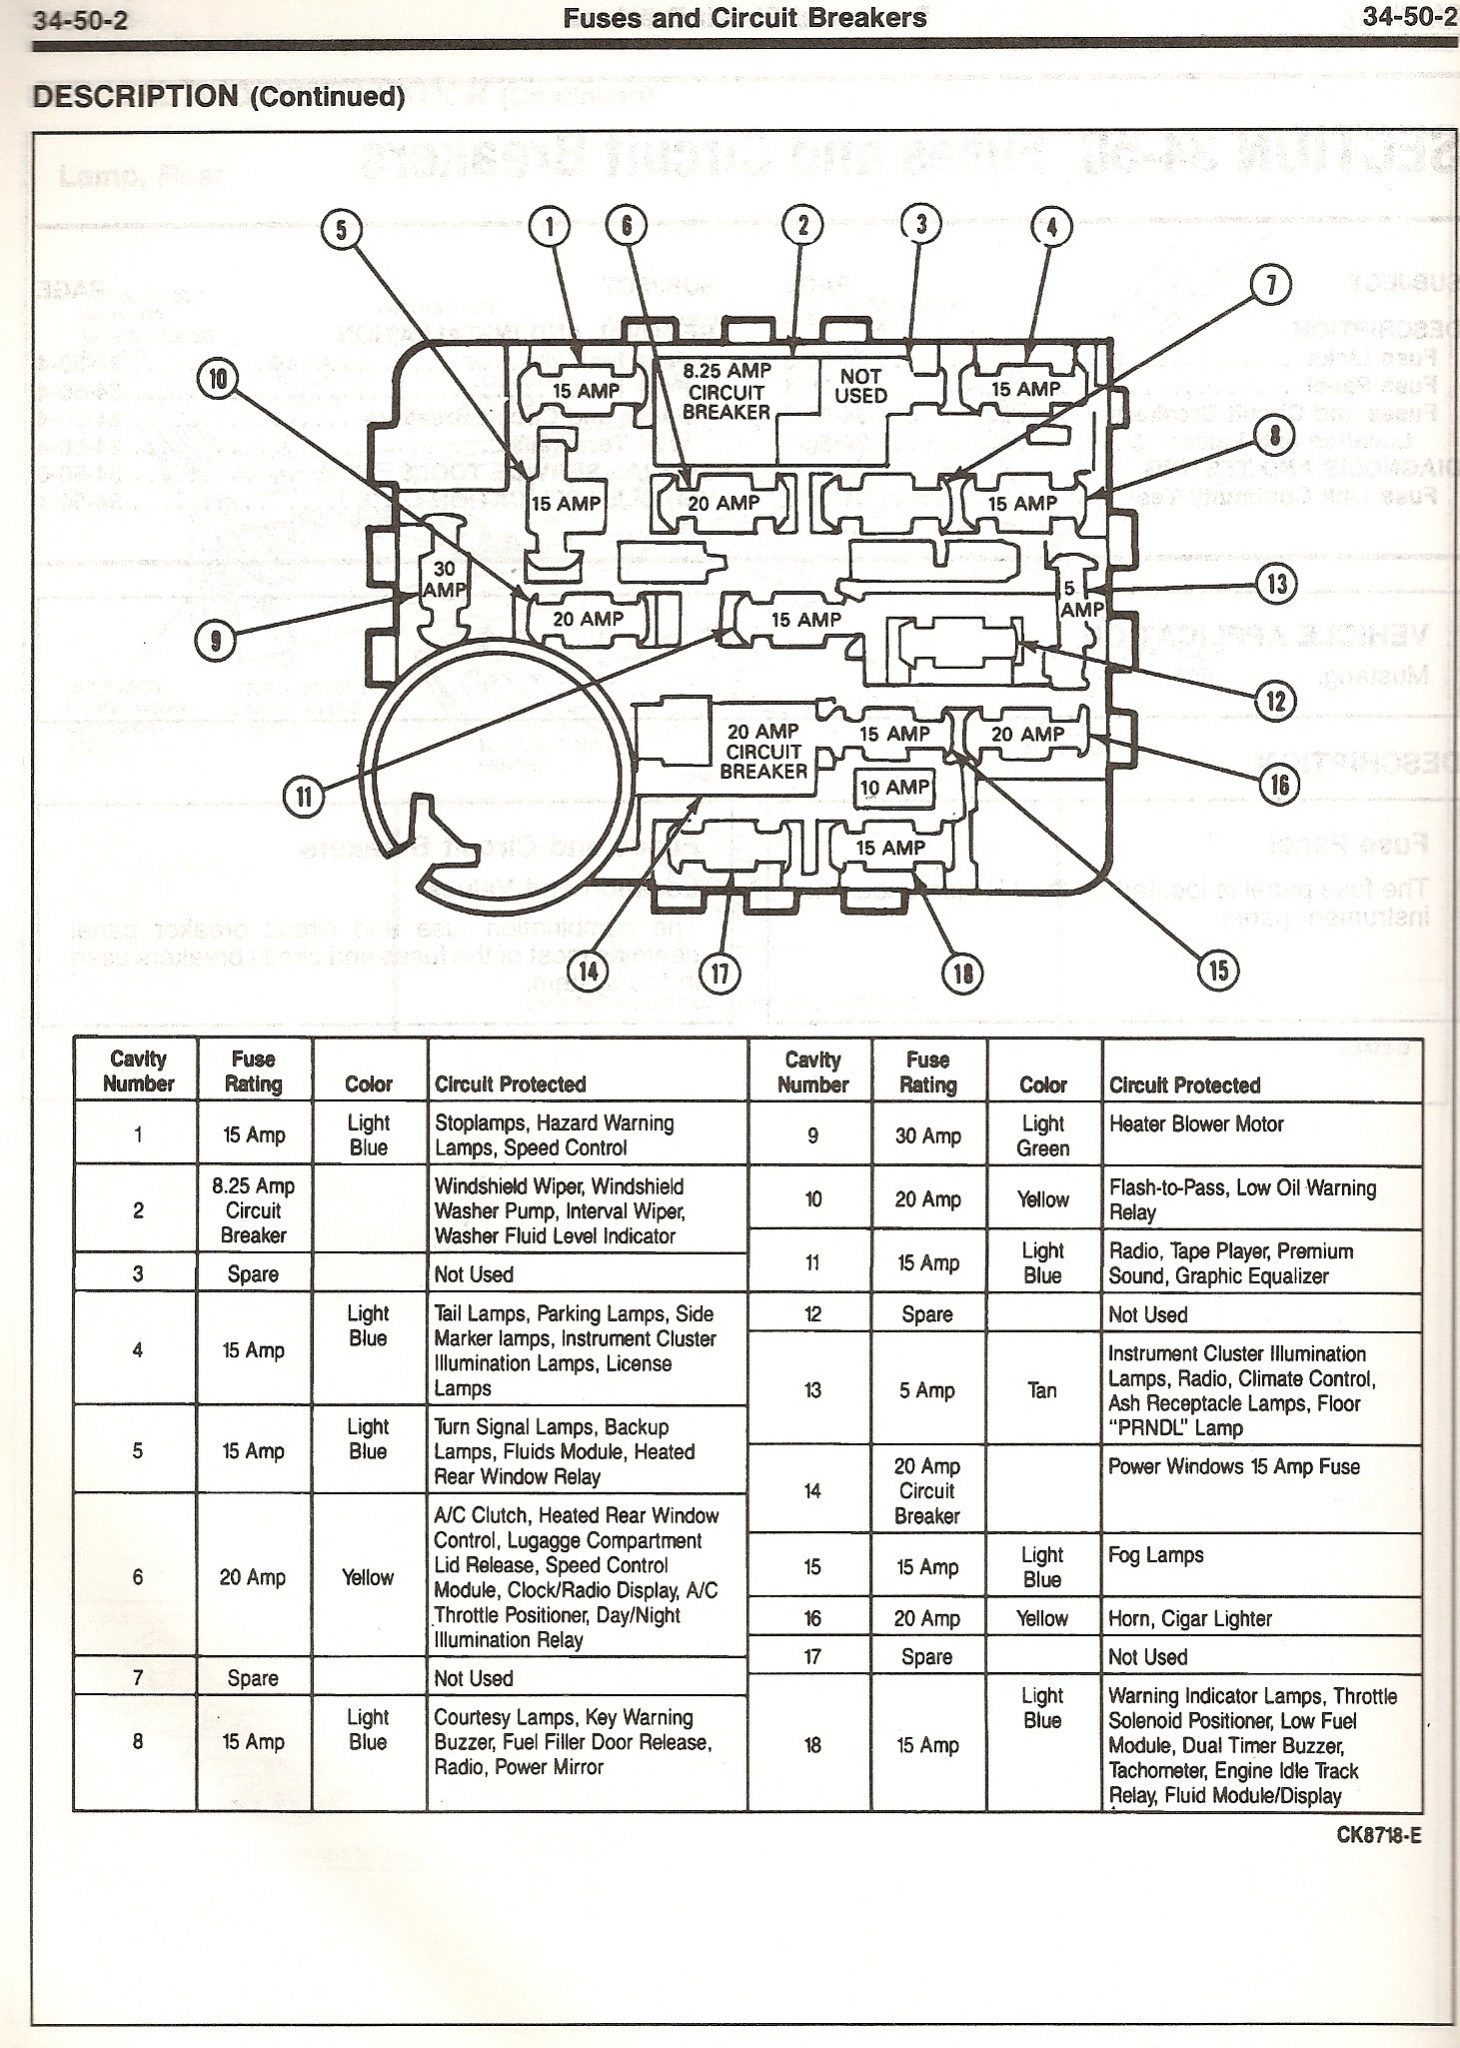 Nice Mf 50 Wiring Diagram Sketch - Wiring Diagram Ideas - guapodugh.com